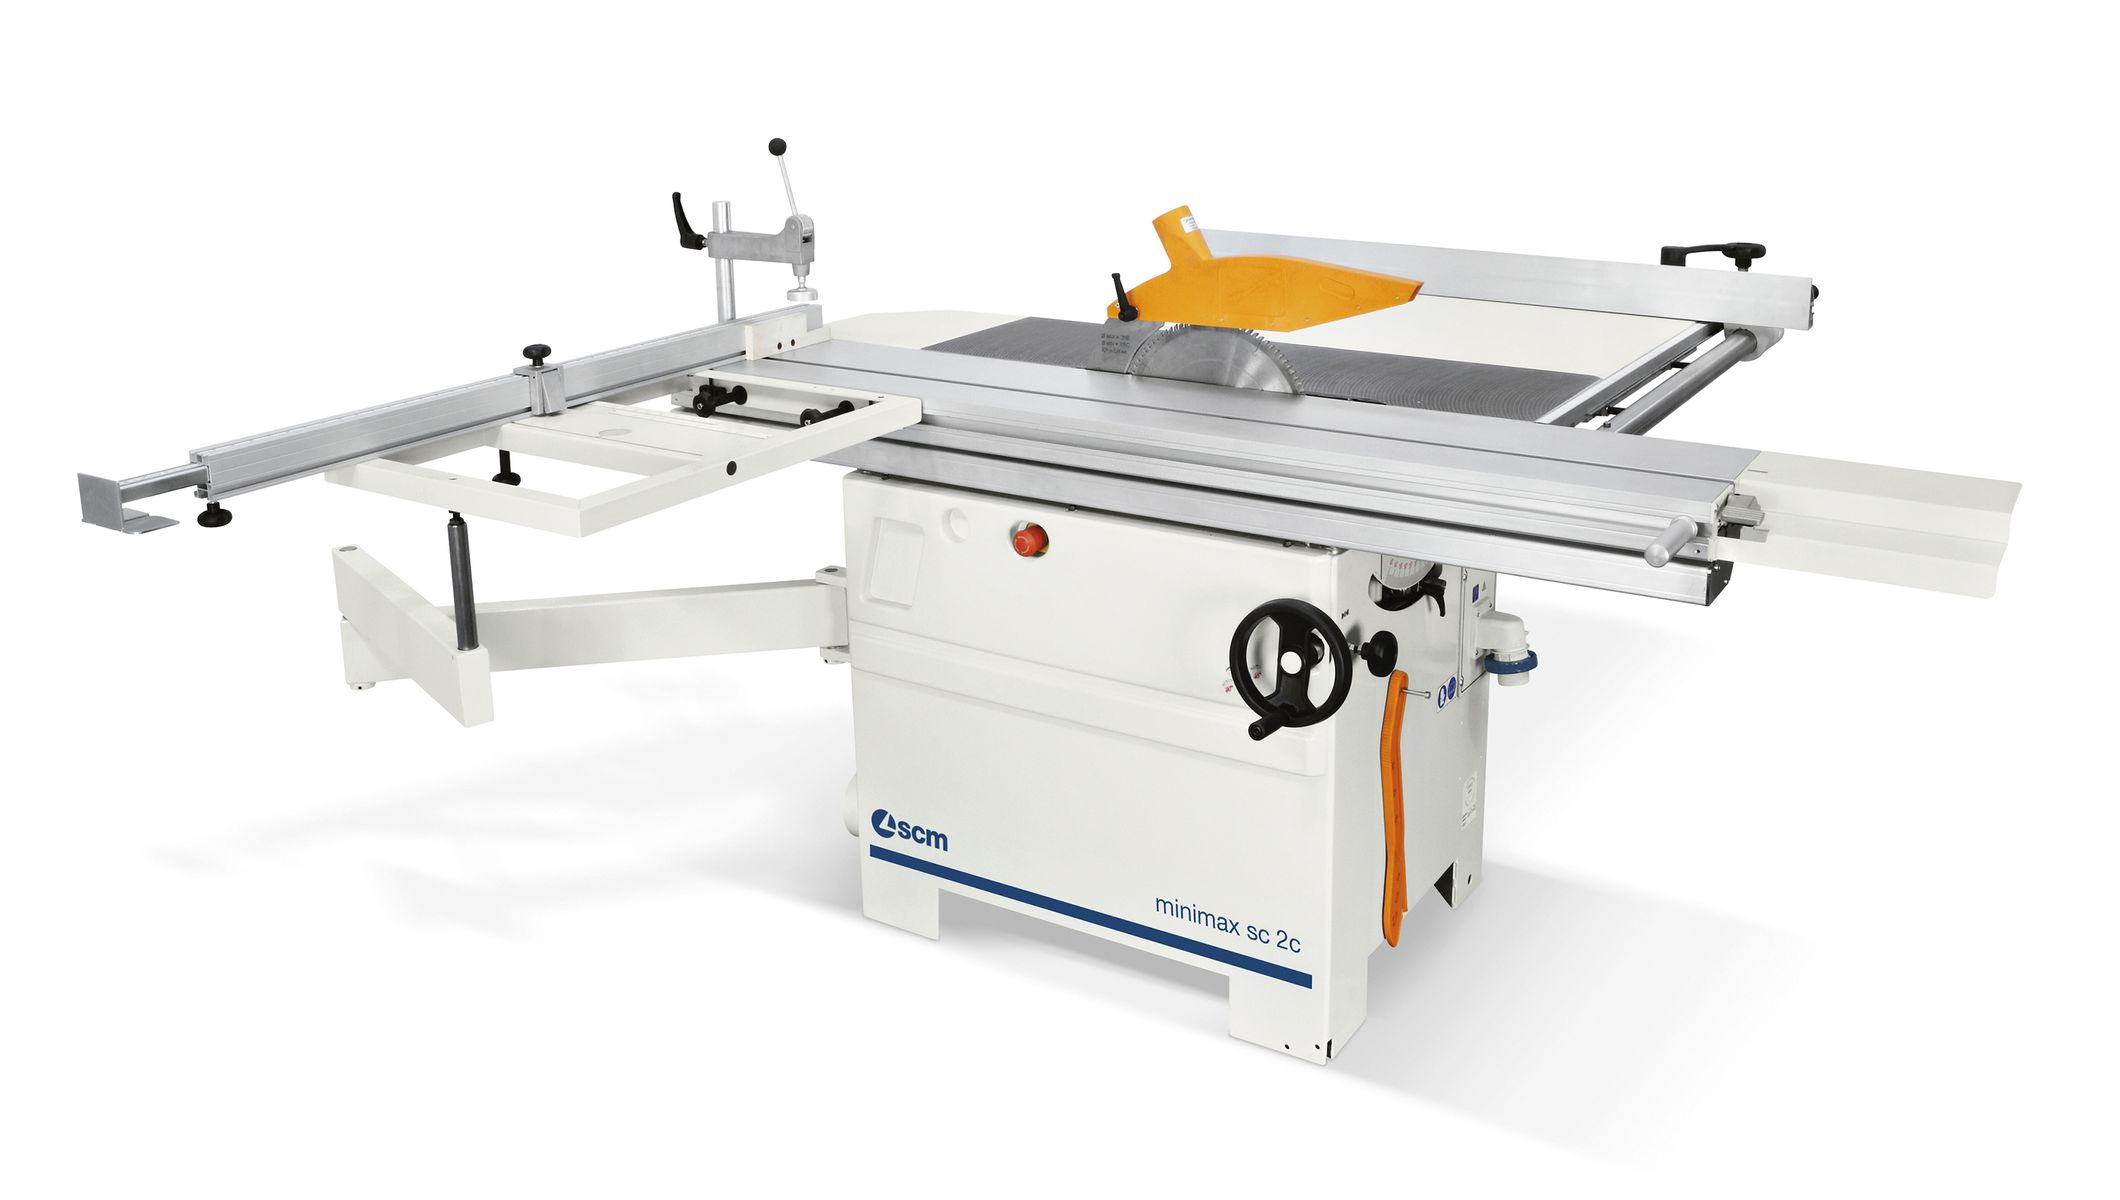 minimax-sc-2c panel saw diamond tools and woodworking ireland